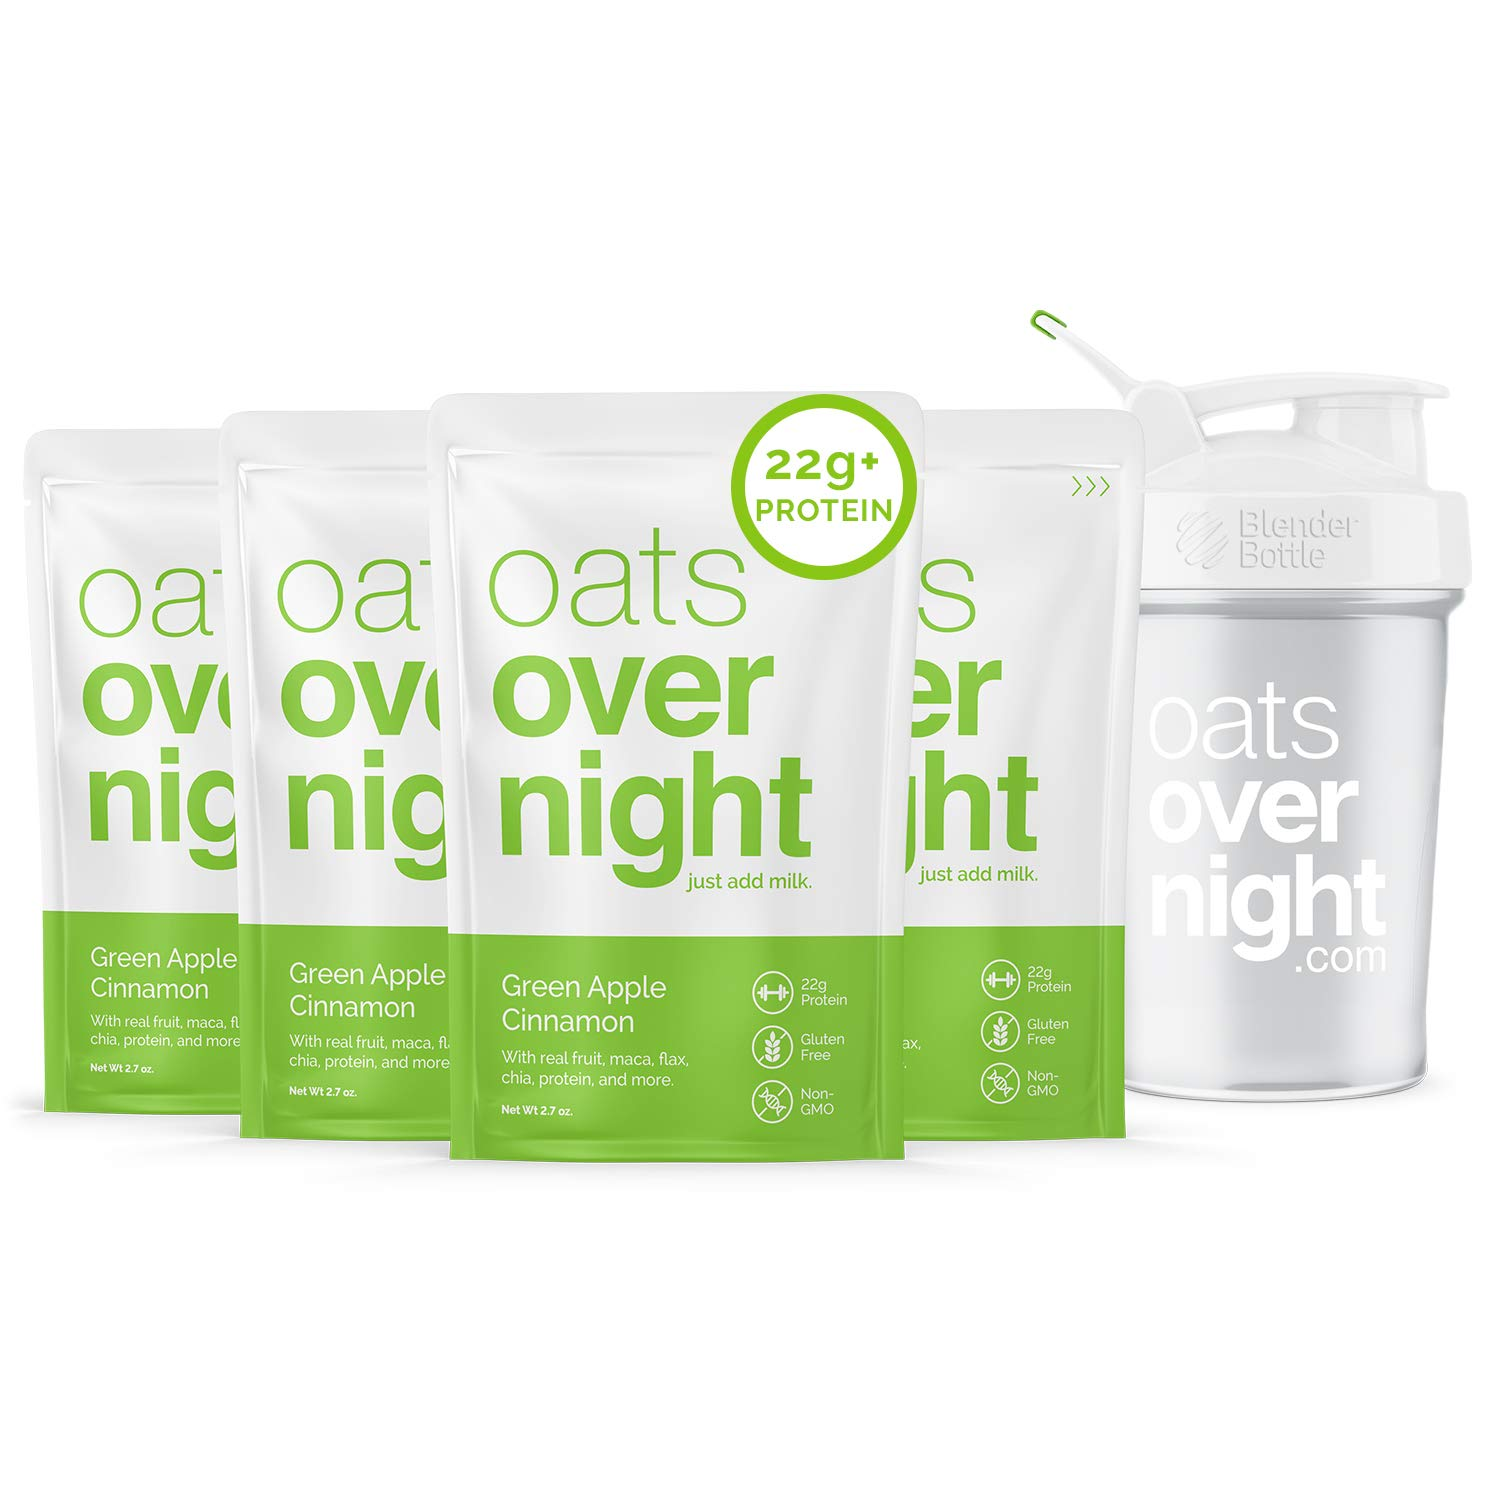 Oats Overnight - Green Apple Cinnamon (8 Pack PLUS BlenderBottle) High Protein, Low Sugar Breakfast - Gluten Free, High Fiber, Non GMO Oatmeal (2.7oz per pack)